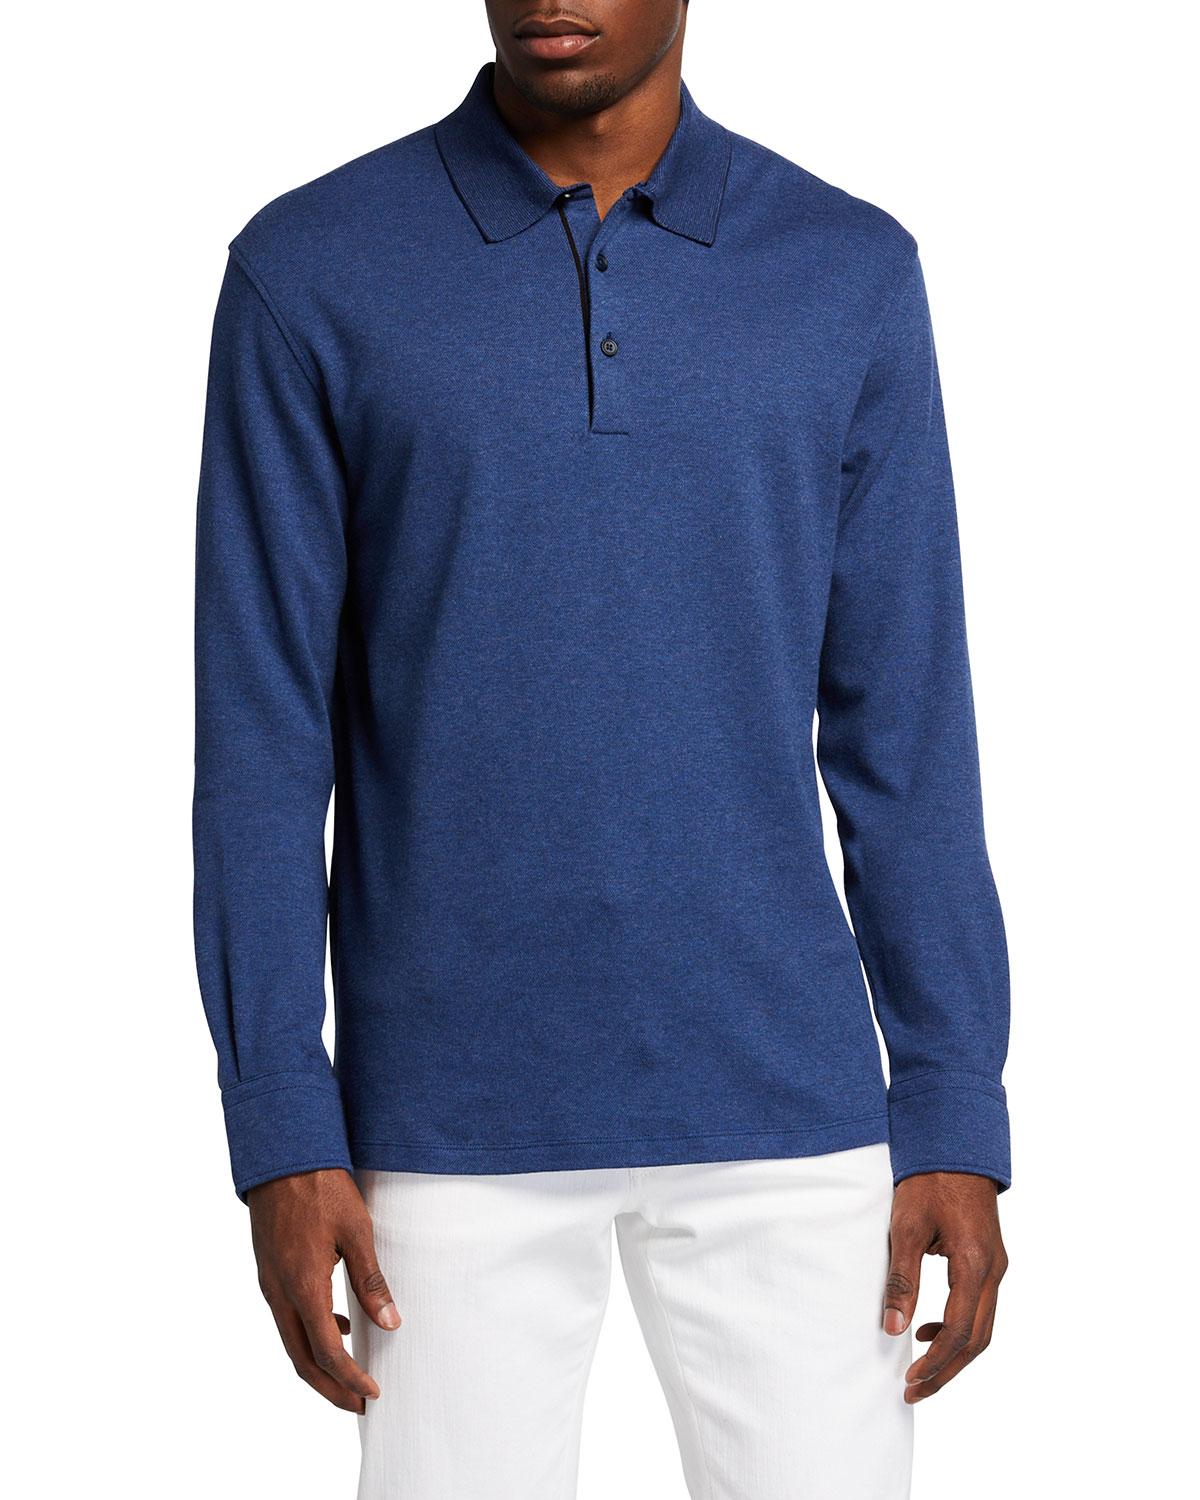 Ermenegildo Zegna Men's Brushed Cotton Long-Sleeve Polo Shirt